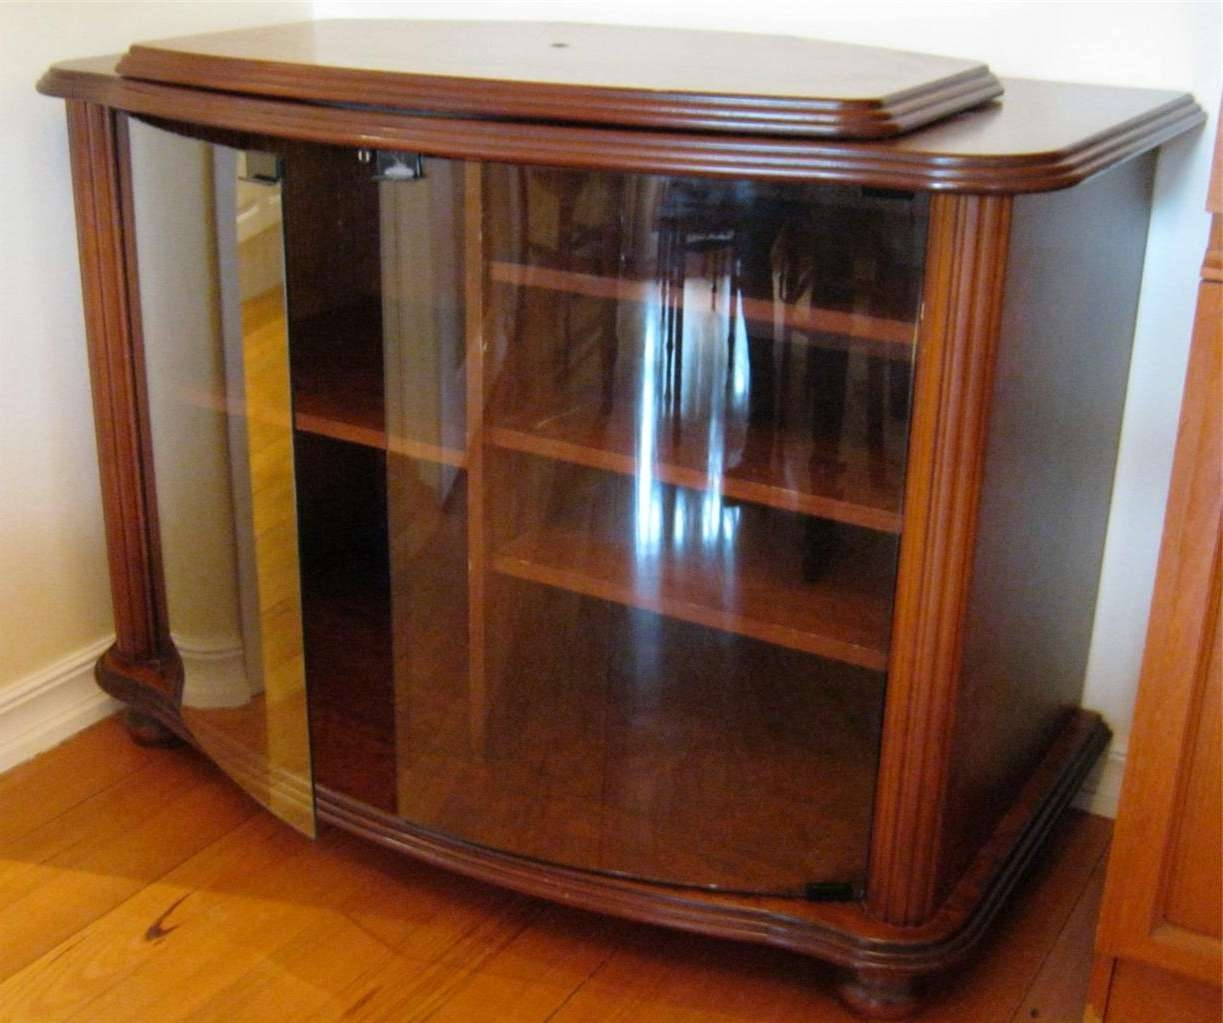 Corner Tv Stand Cabinet With Frameless Glass Doors – Decofurnish With Corner Tv Cabinets With Glass Doors (View 3 of 20)